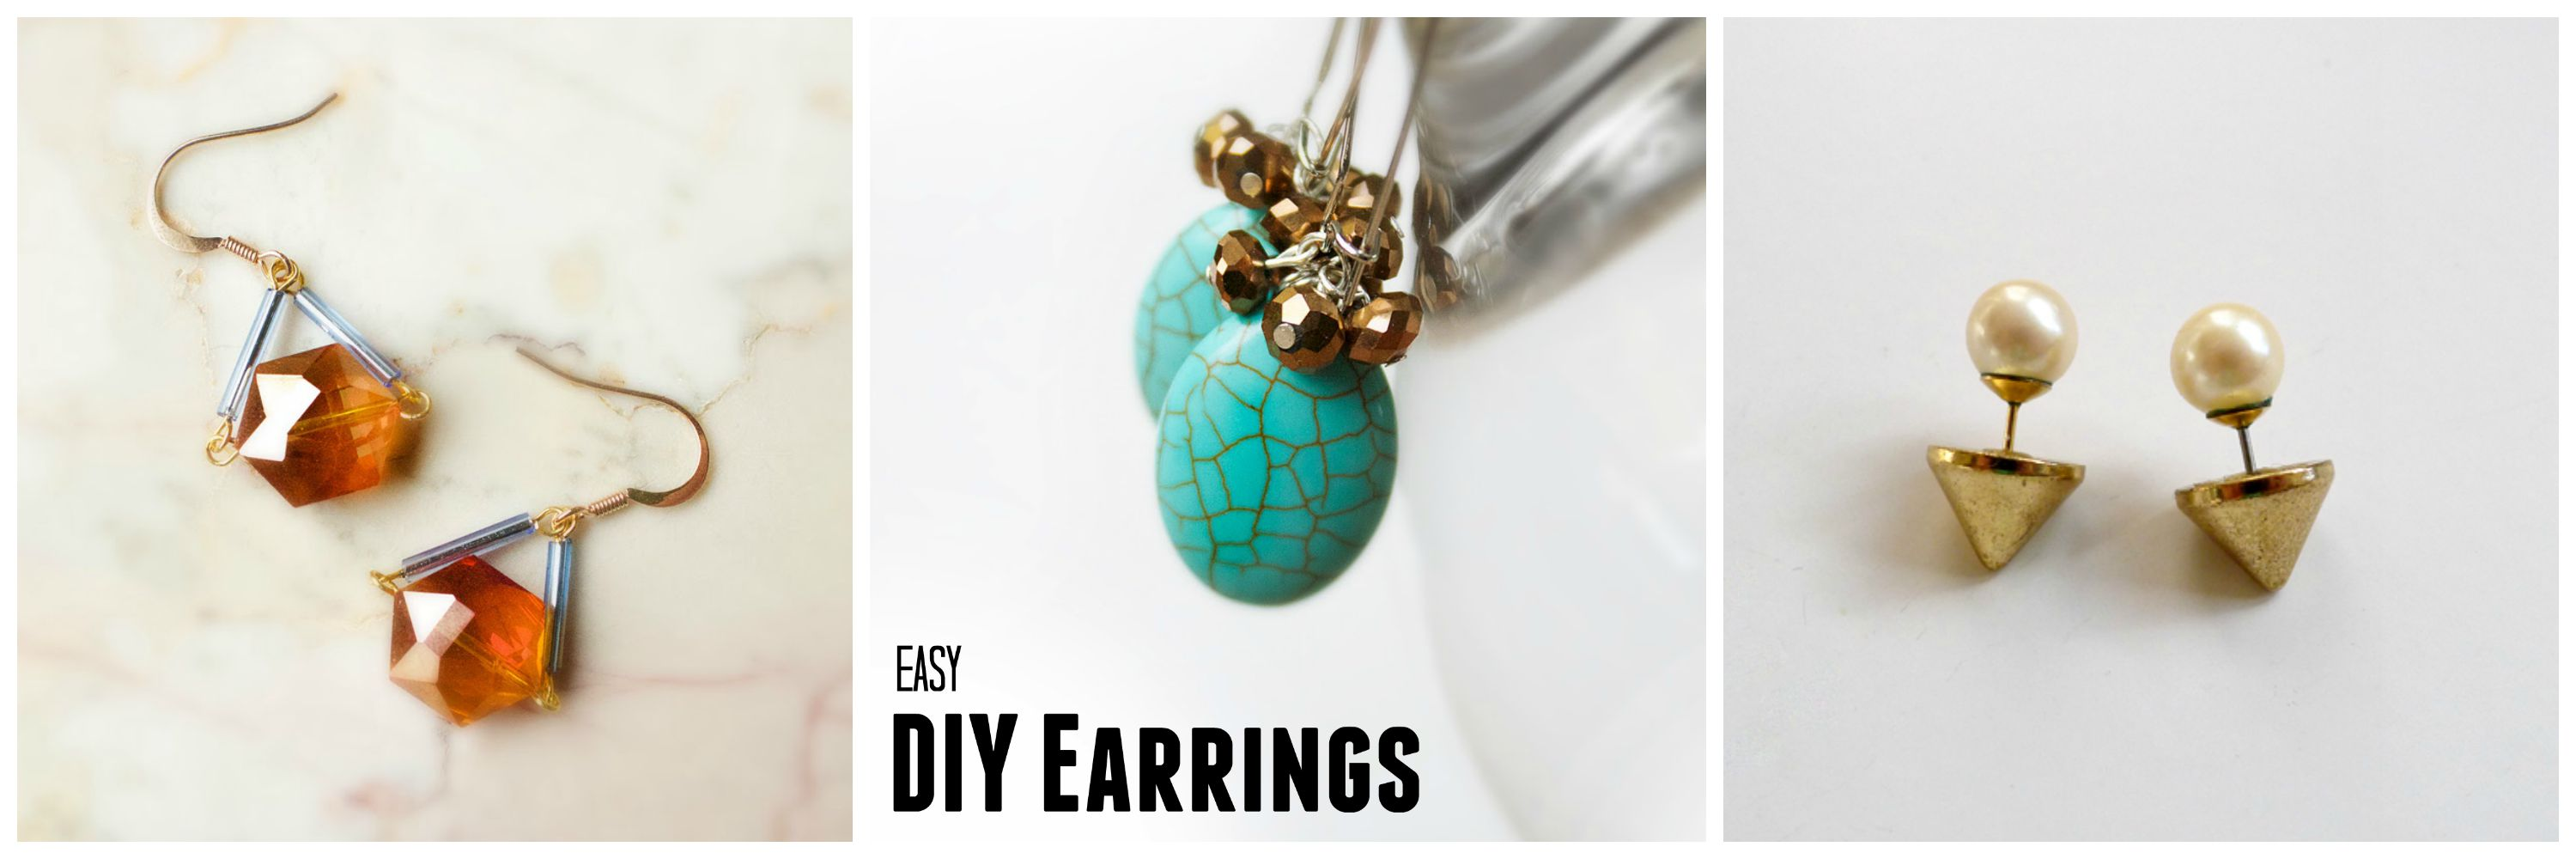 com dangle happyhourprojects happy hour diy projects earrings at easy embossed